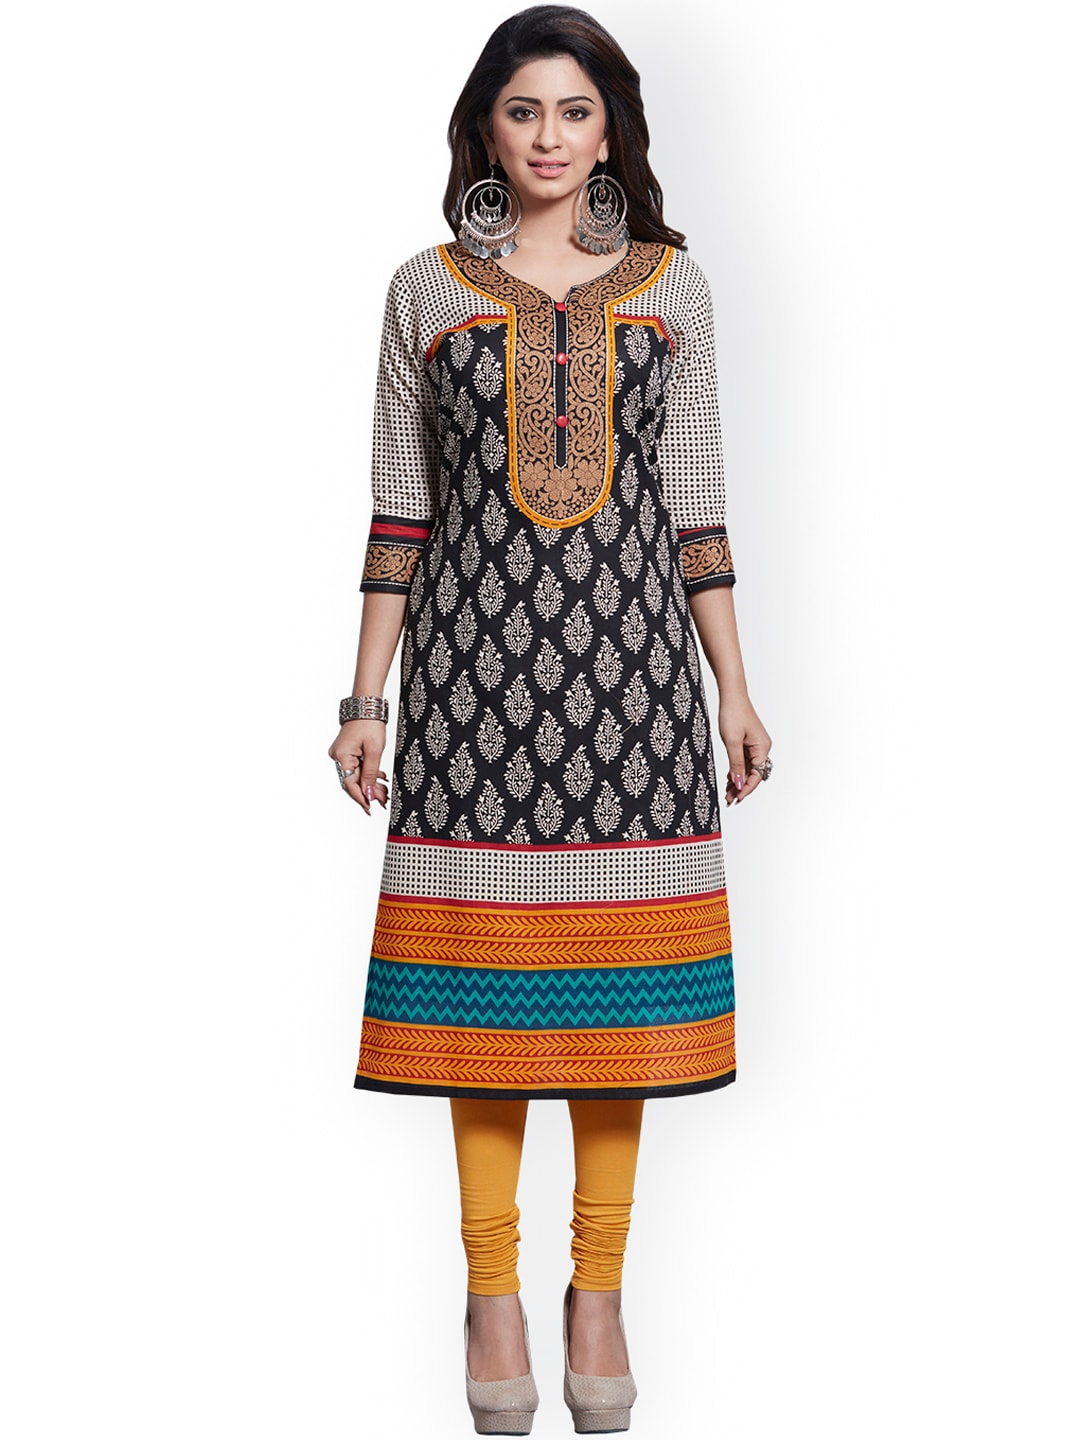 Ishin Black & Yellow Pure Cotton Unstitched Dress Material image